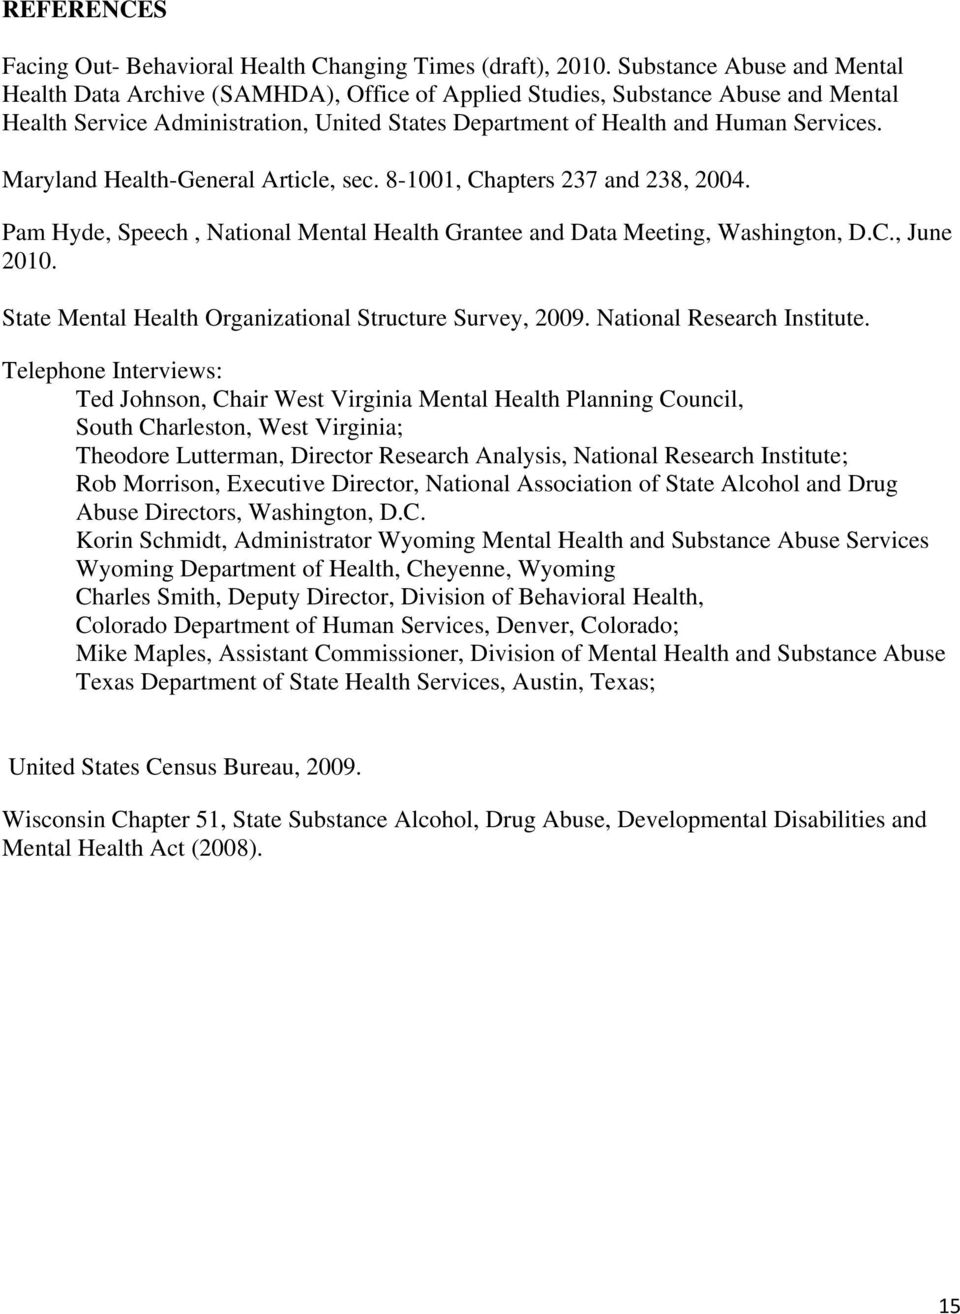 Maryland Health-General Article, sec. 8-1001, Chapters 237 and 238, 2004. Pam Hyde, Speech, National Mental Health Grantee and Data Meeting, Washington, D.C., June 2010.